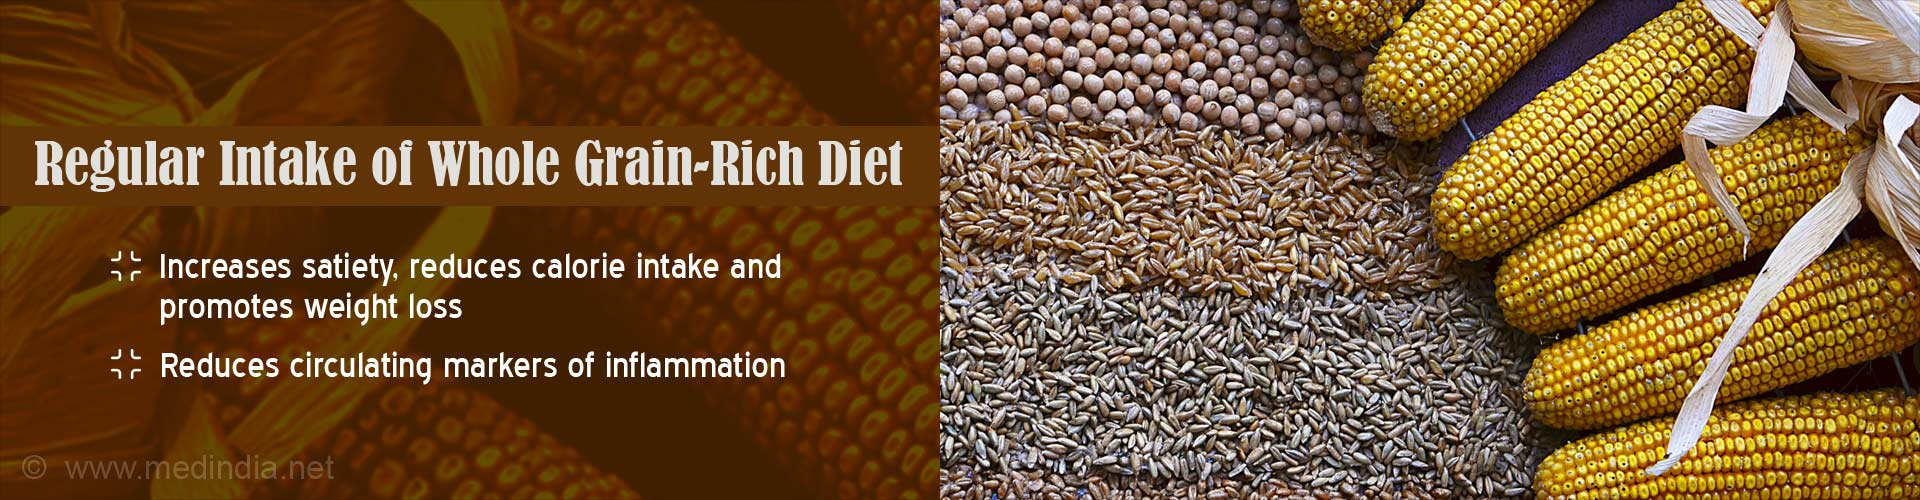 Regular intake of whole grain-rich diet